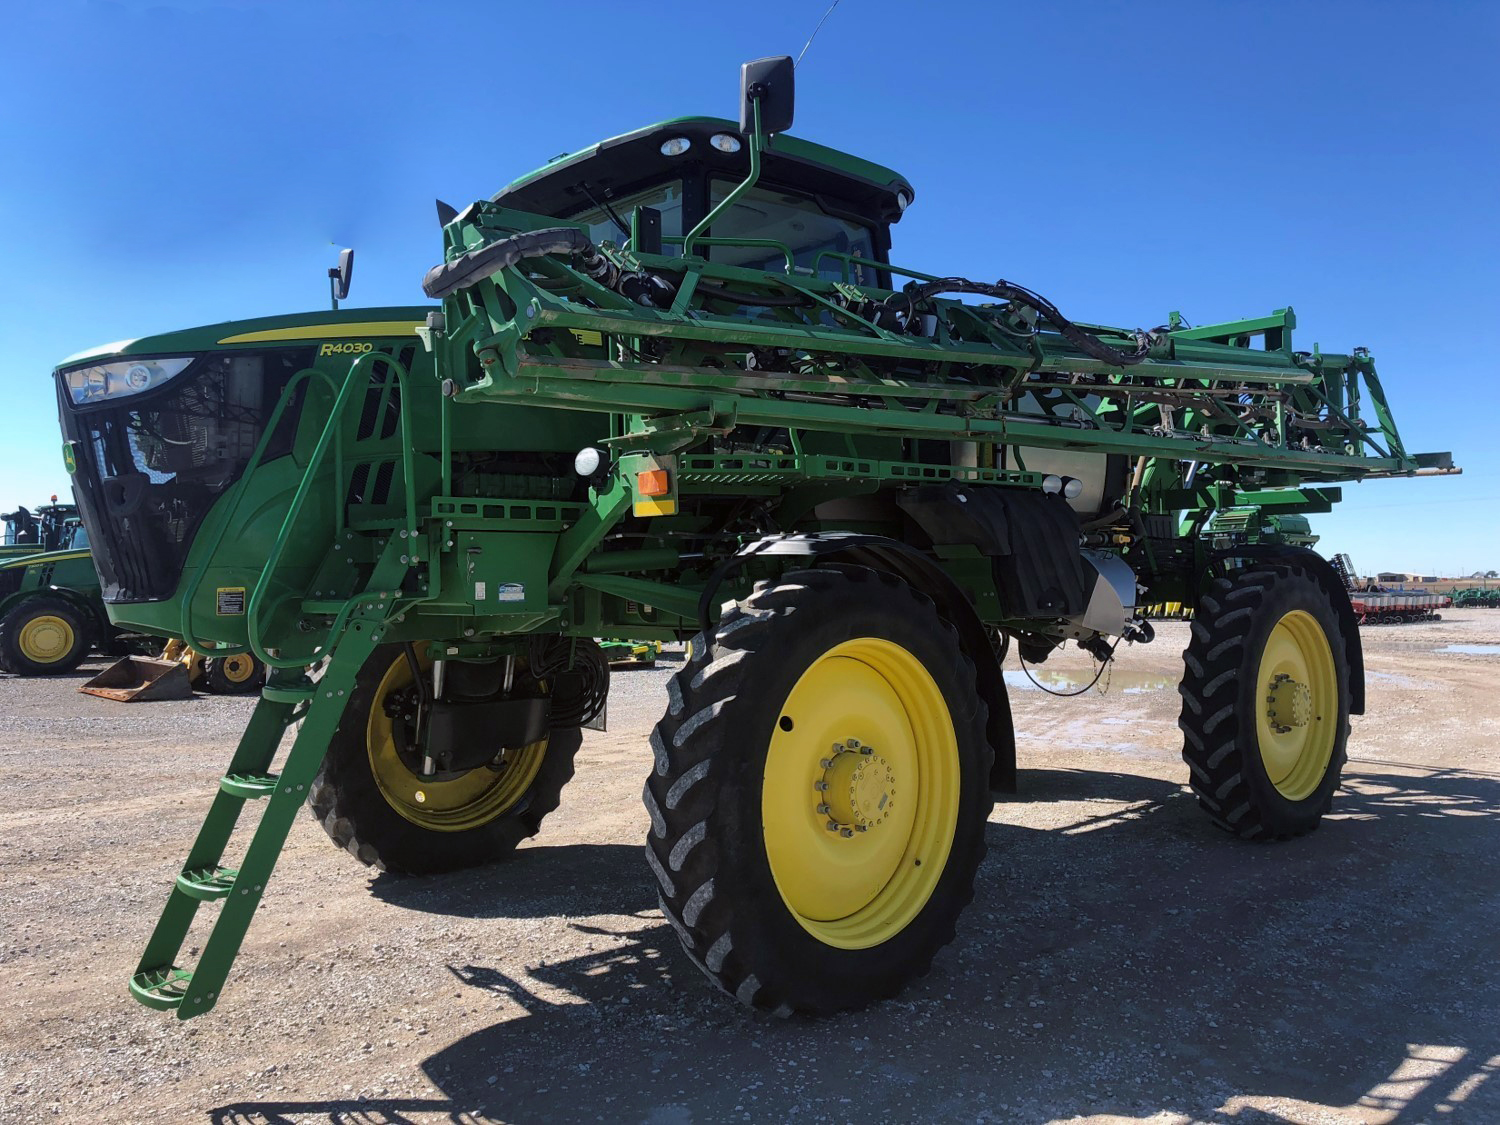 Used Farm Equipment | John Deere Tractor | Western Equipment